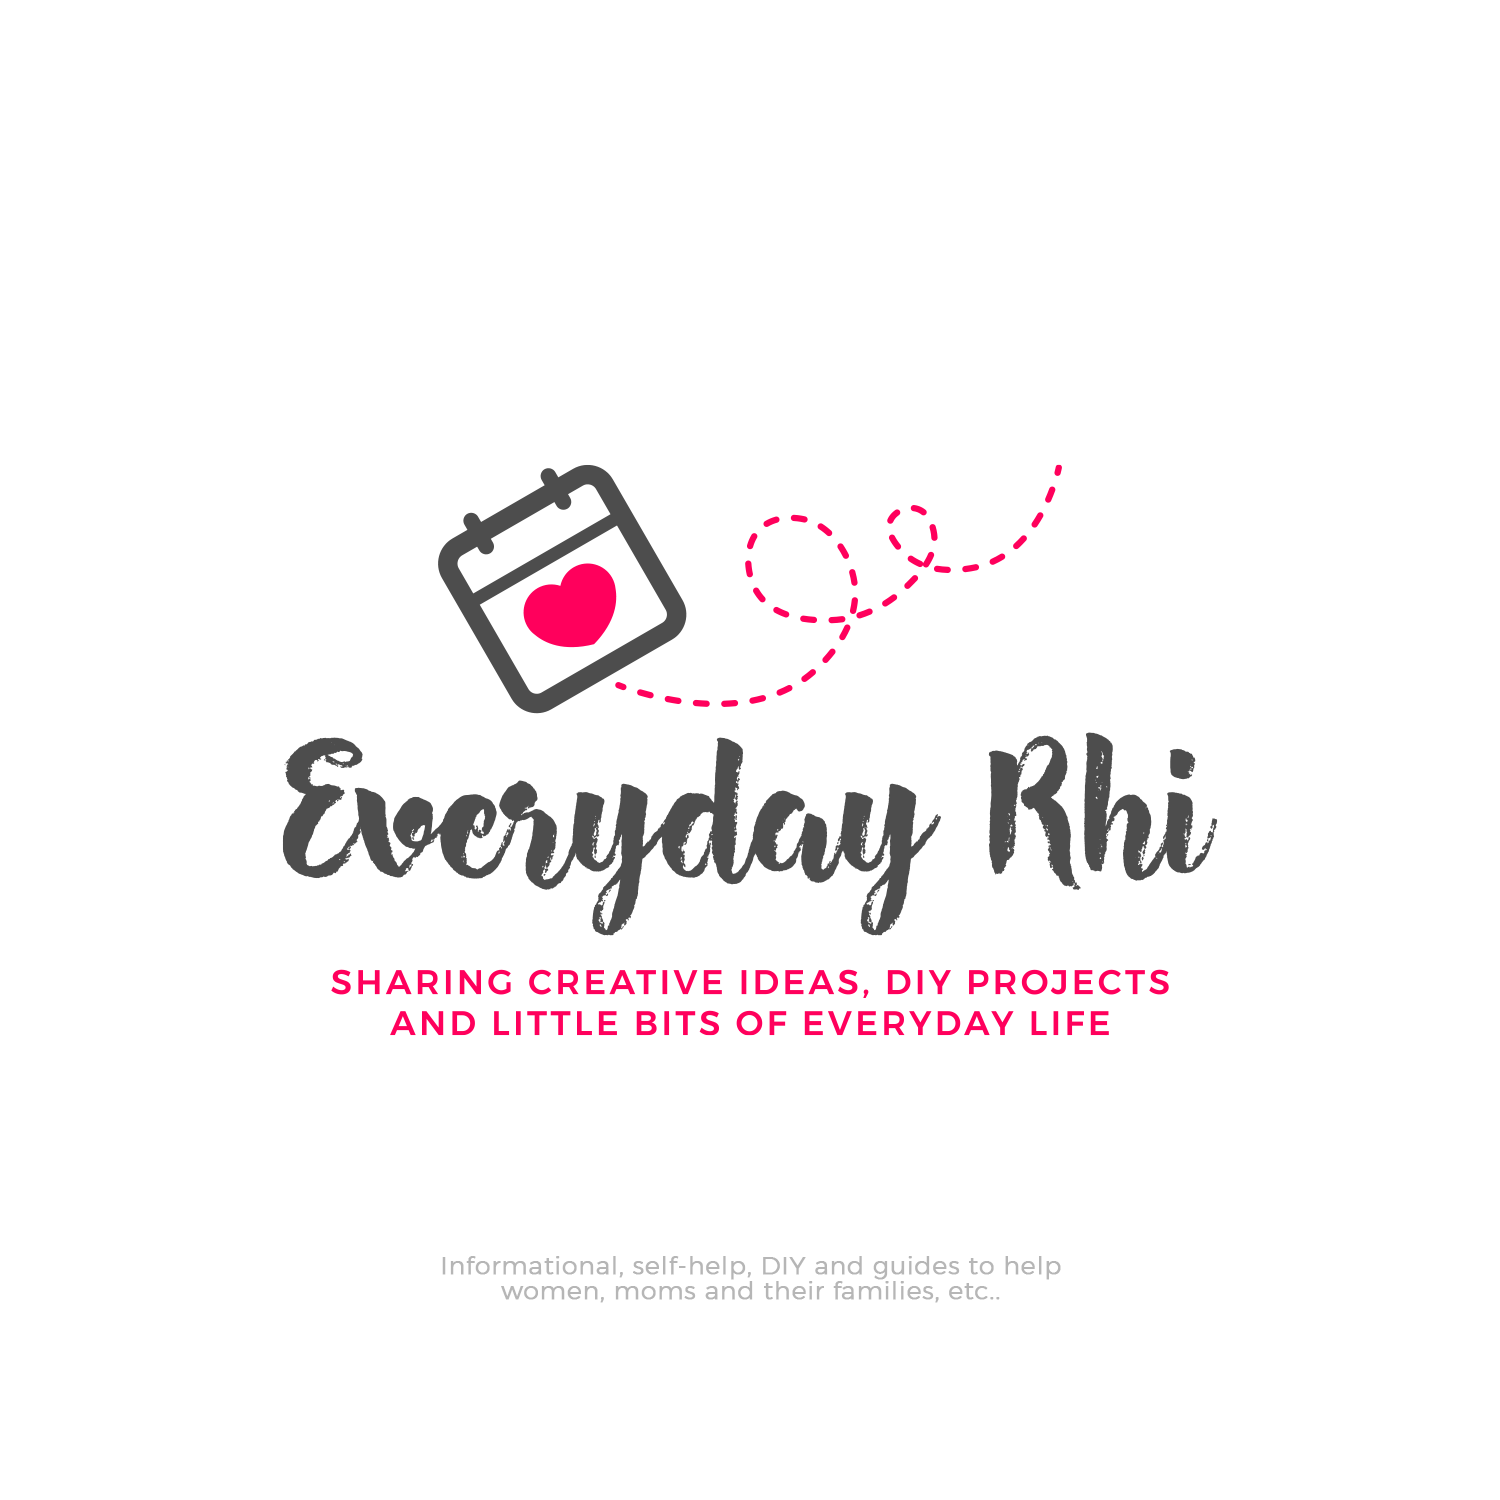 Logo Design Package - Gift for my wife's new Blogging site